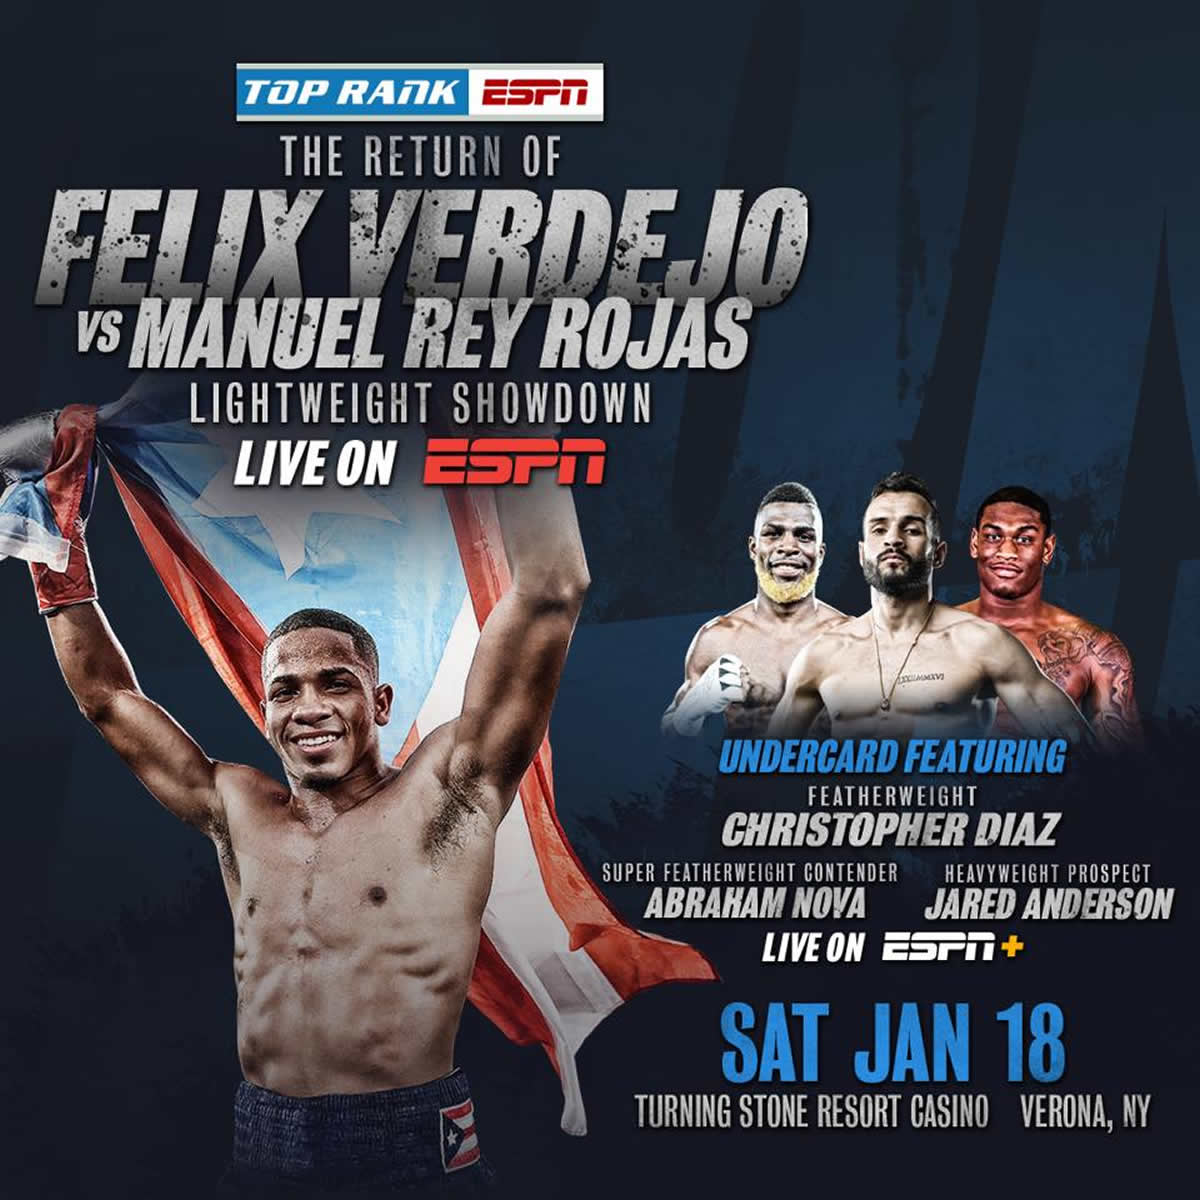 Eleider Alvarez and Michael Seals battle it out for WBC Continental Americas and WBO Intercontinental light heavyweight titles live on @espn #AlvarezSeals   More: https://www.fightmag.com.au/2020/01/18/alvarez-vs-seals-undercard-weigh-in-results-how-to-watch/…pic.twitter.com/JXM5y2QQkg